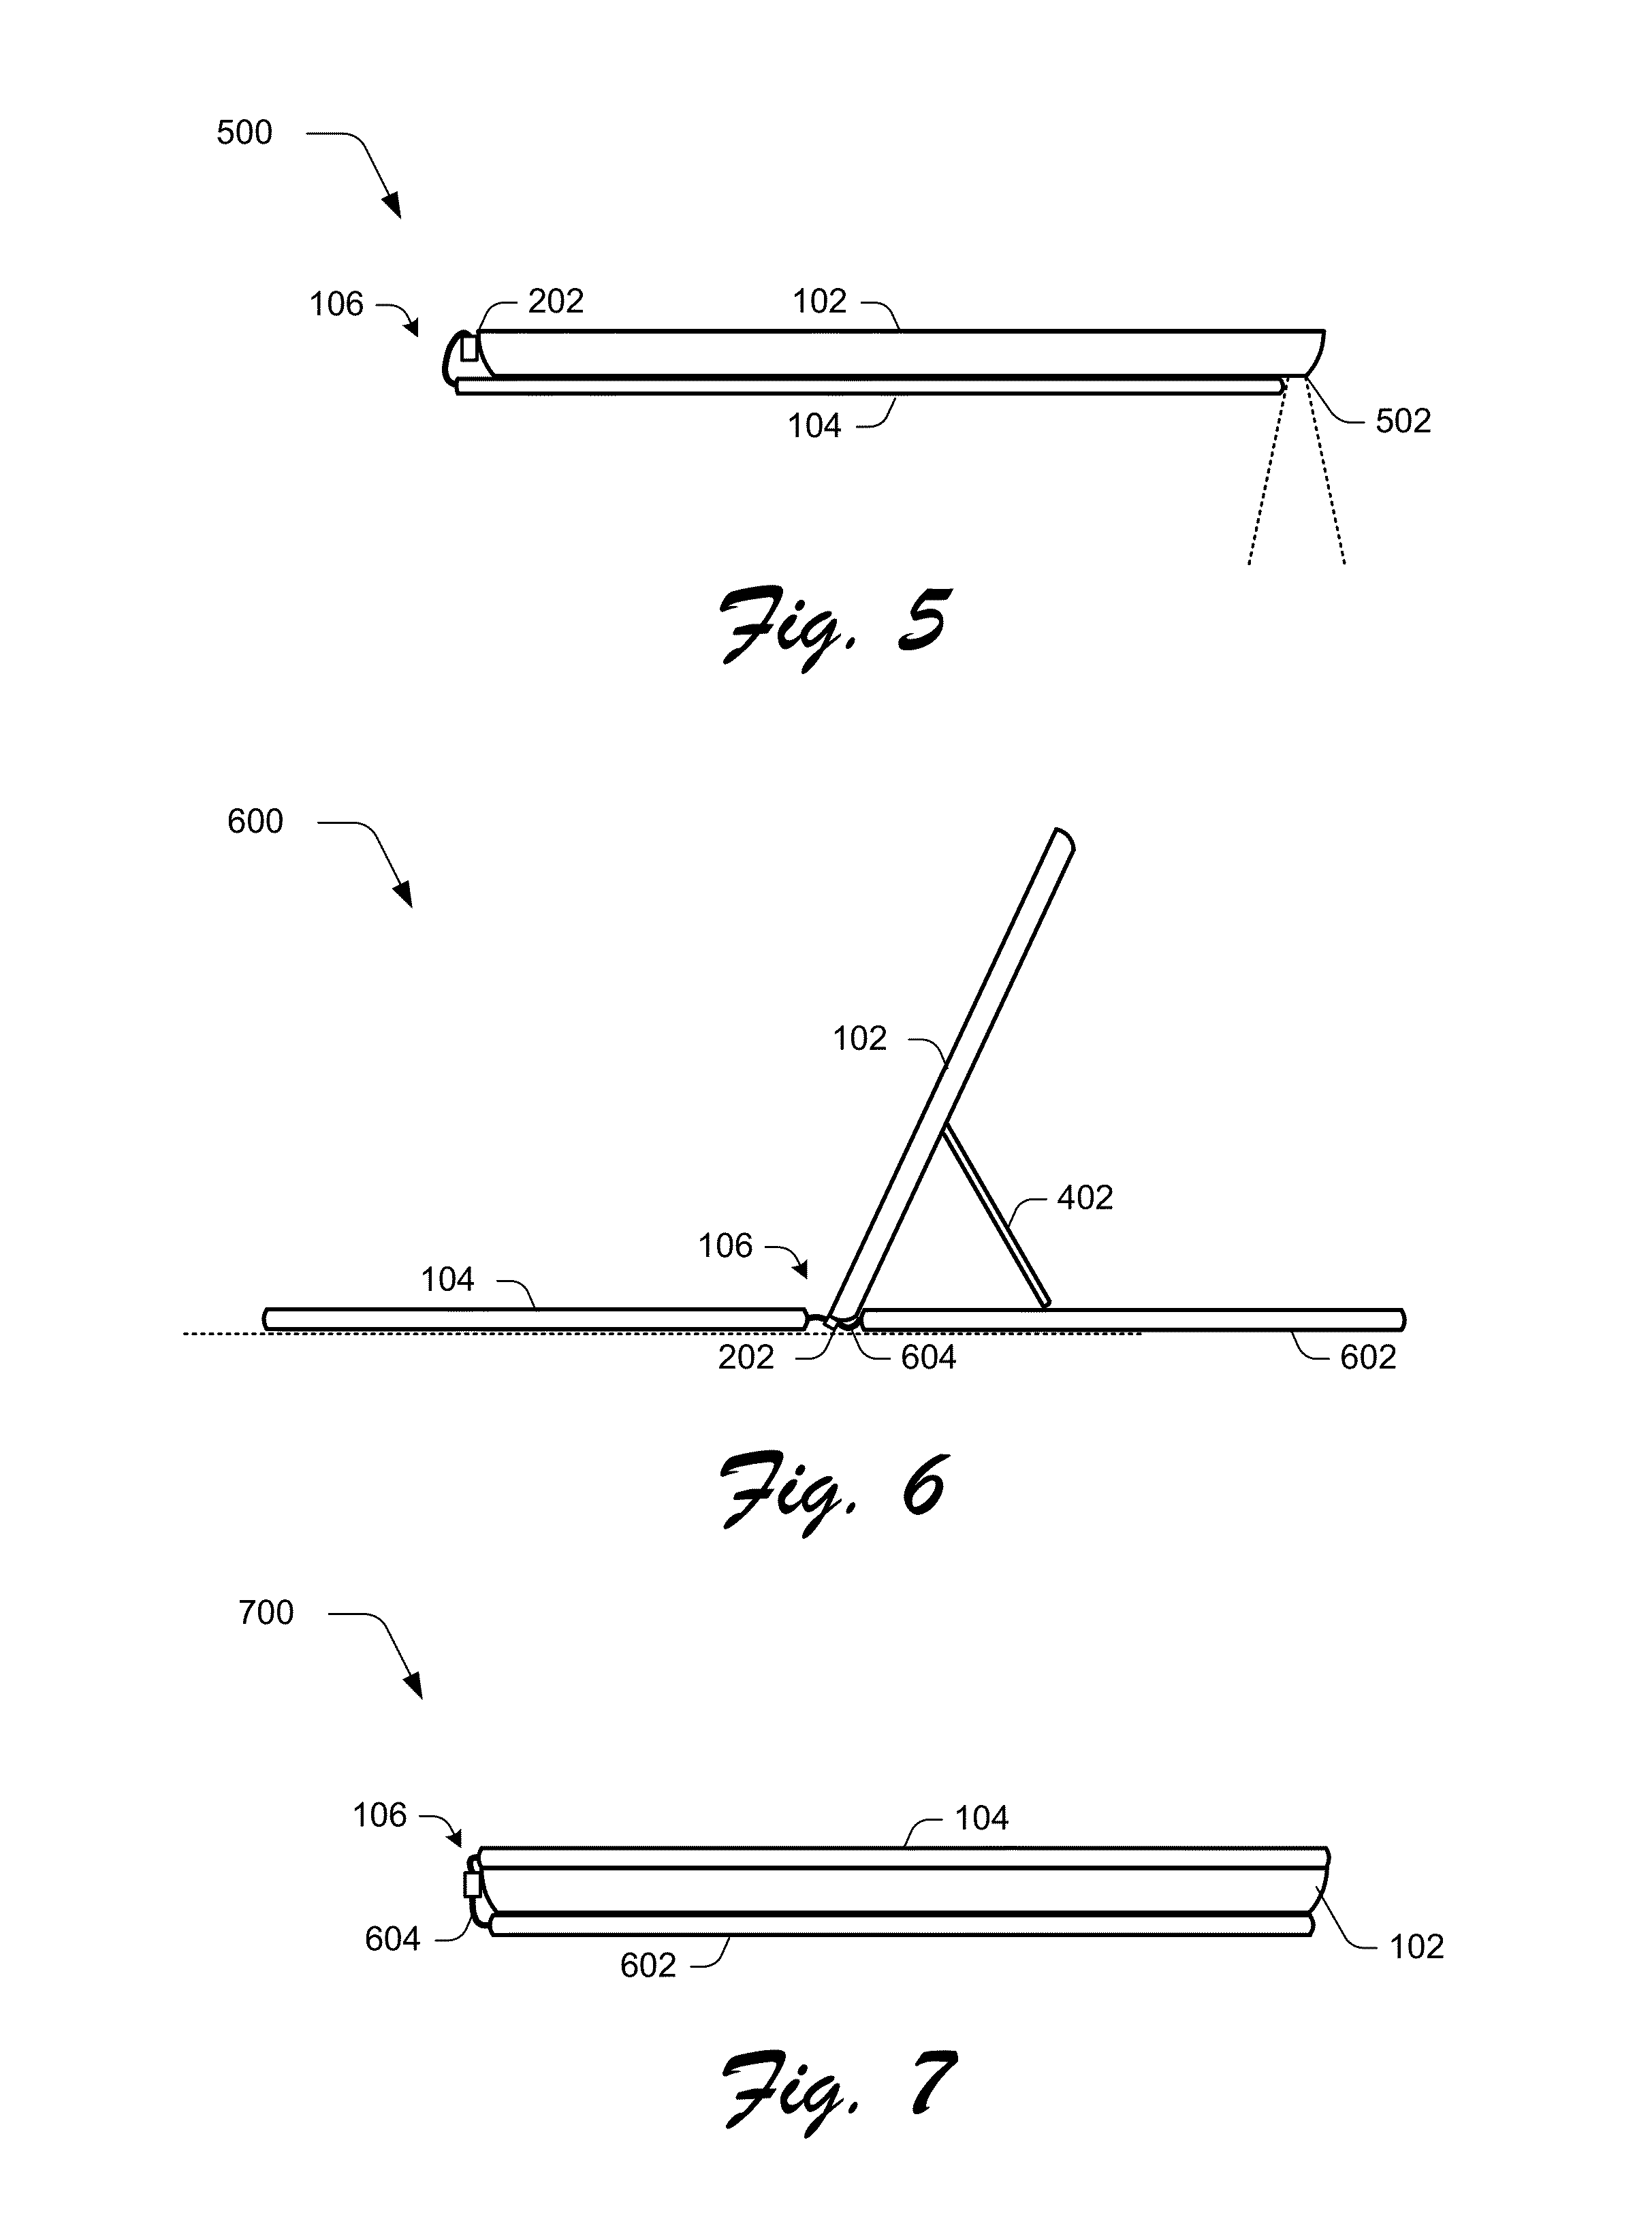 US9134808B2 - Device kickstand - Google Patents